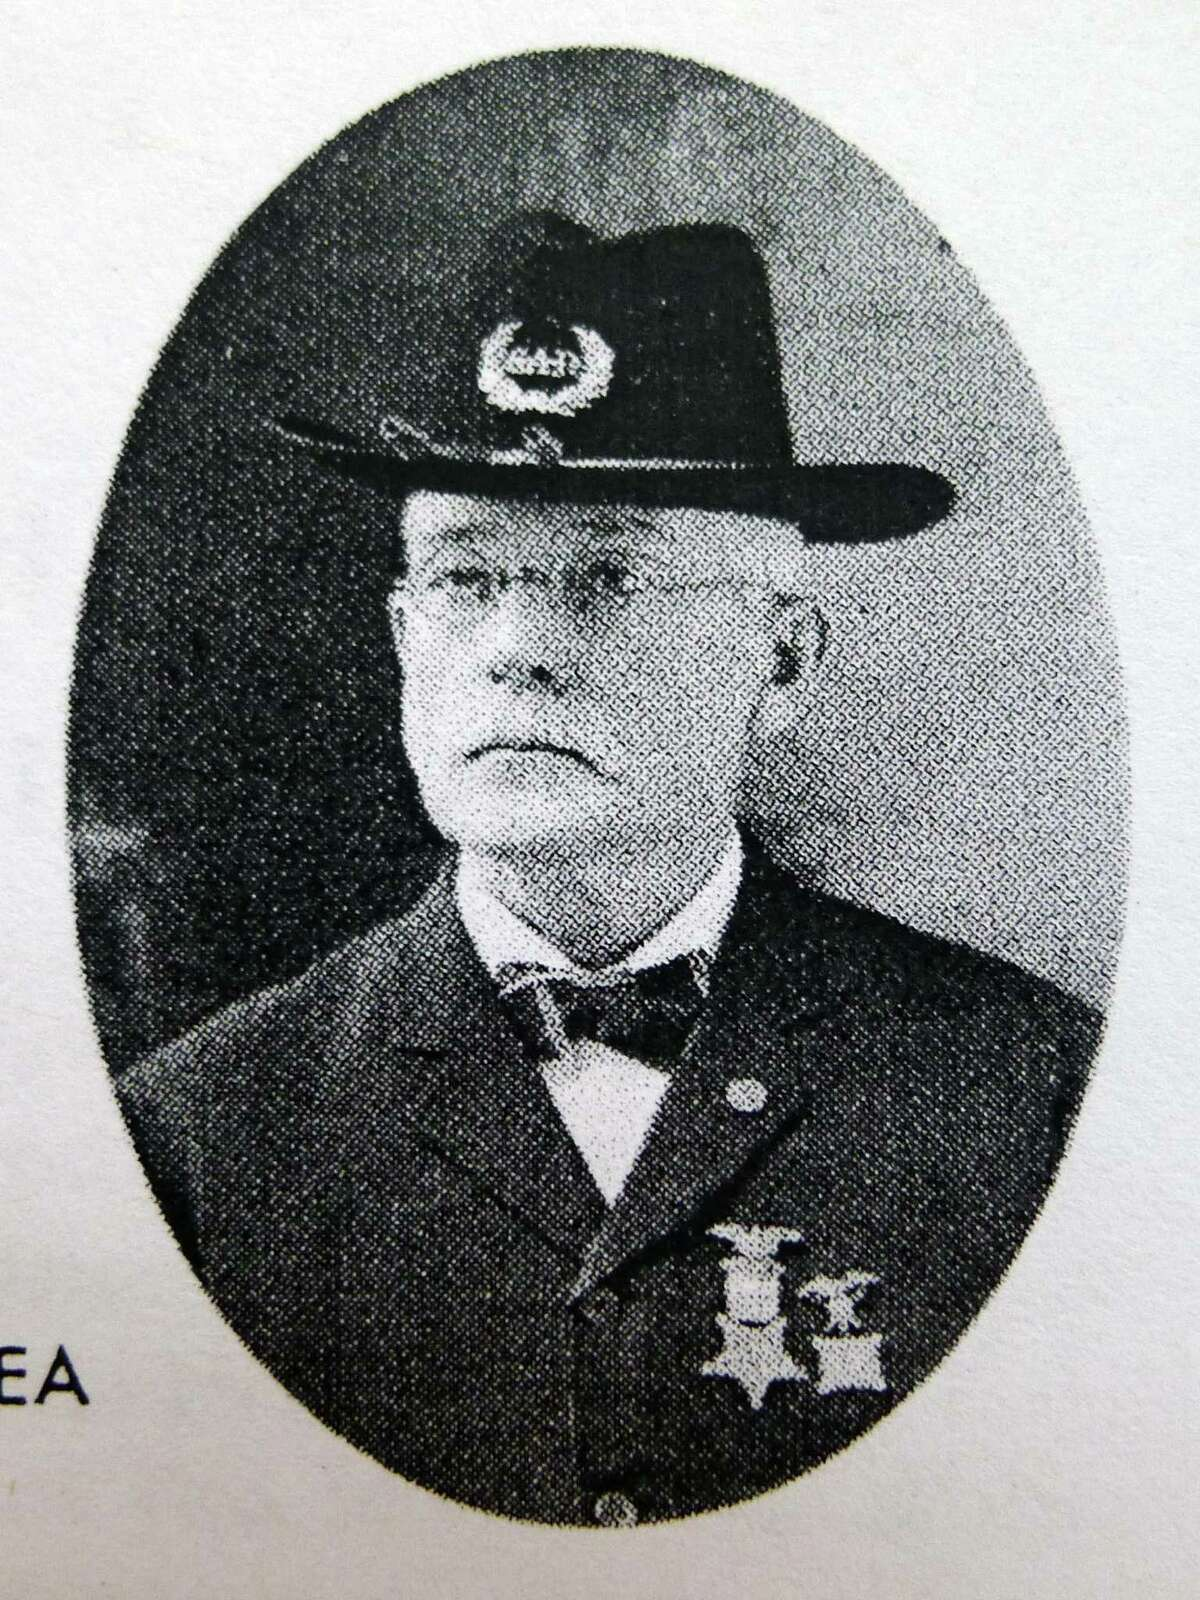 Photograph of Thomas O'Dea, an ireland native who fought in the Civil War and was a POW in the Confederate's notorious Andersonville Prison in Georgia. He survived and moved to Cohoes, and created a huge artwork of the prison and its atrocious conditions. (Photo Courtesy of Paul K Perreault)